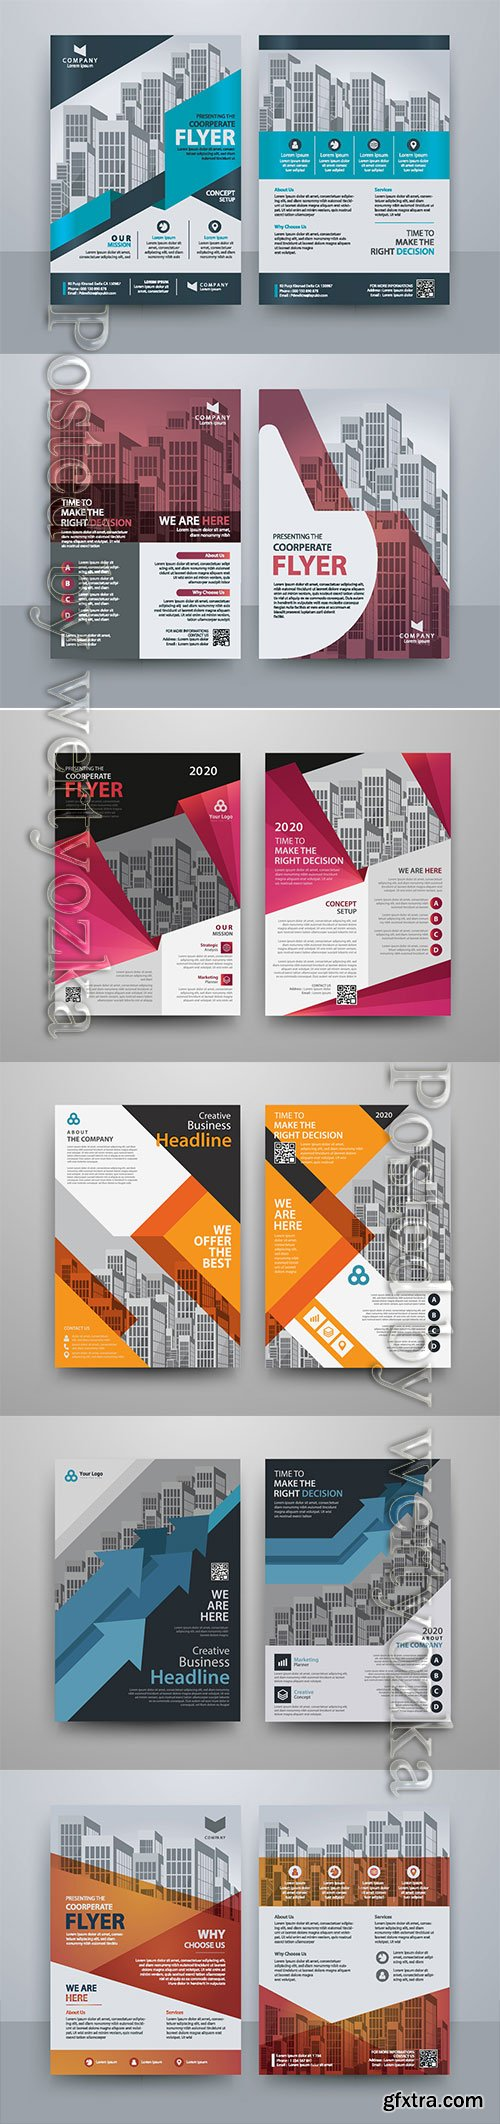 Business vector template for brochure, annual report, magazine # 14